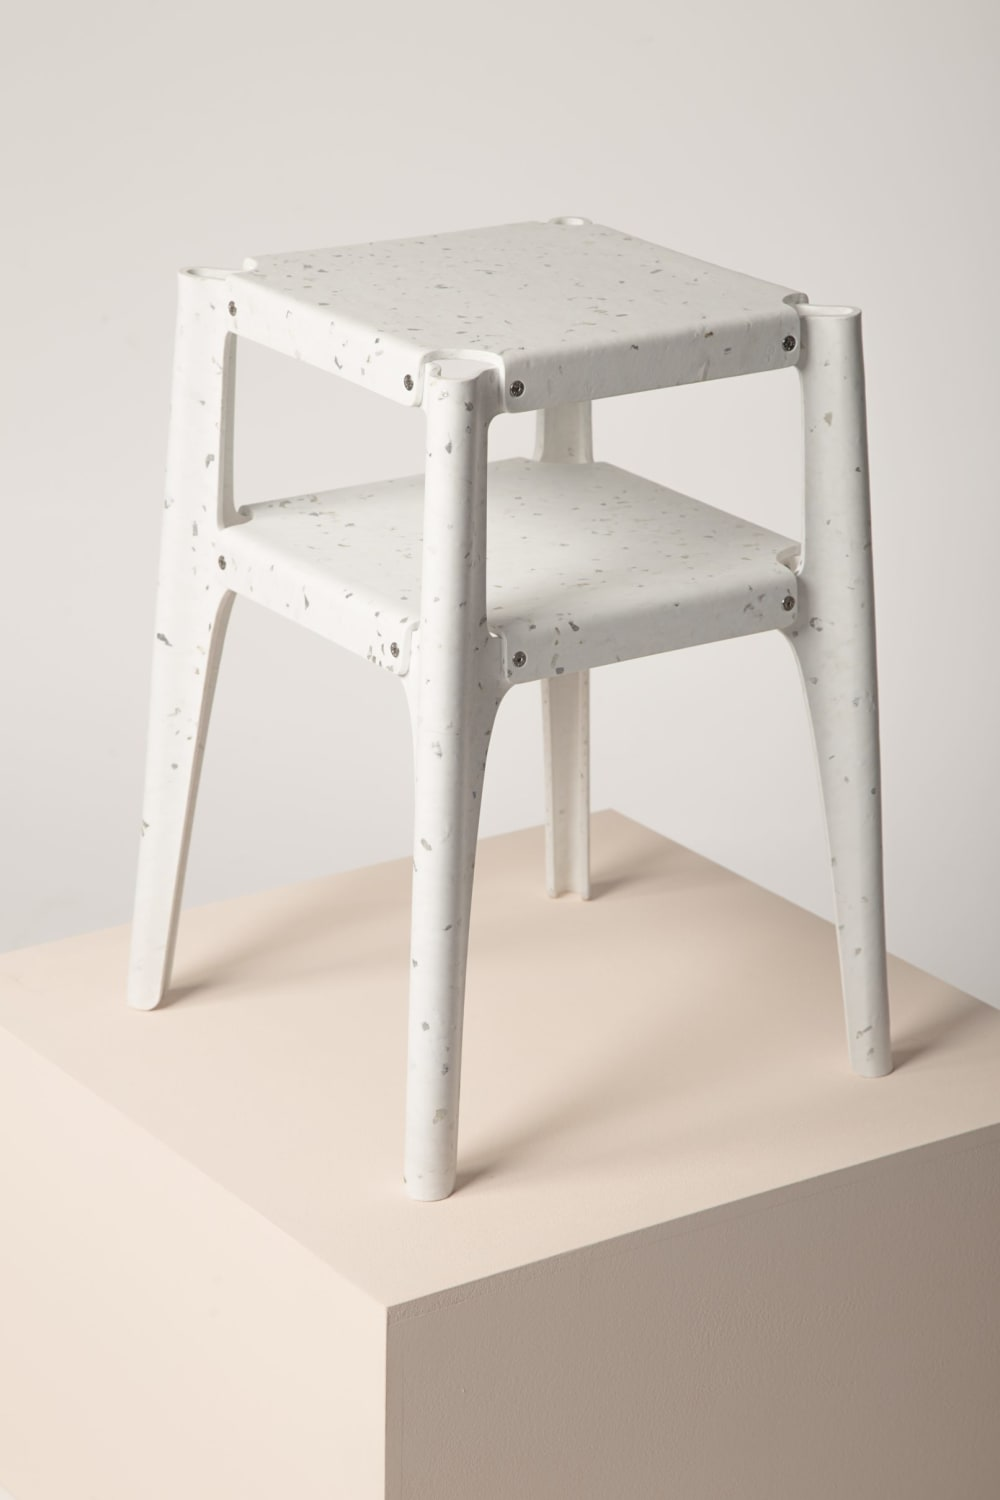 "Recycled plastic stool winning the Guiltess Plastic Prize: one of the plastic recycling initiatives presented at Milan Design Week.<span class=""sr-only""> (opened in a new window/tab)</span>"